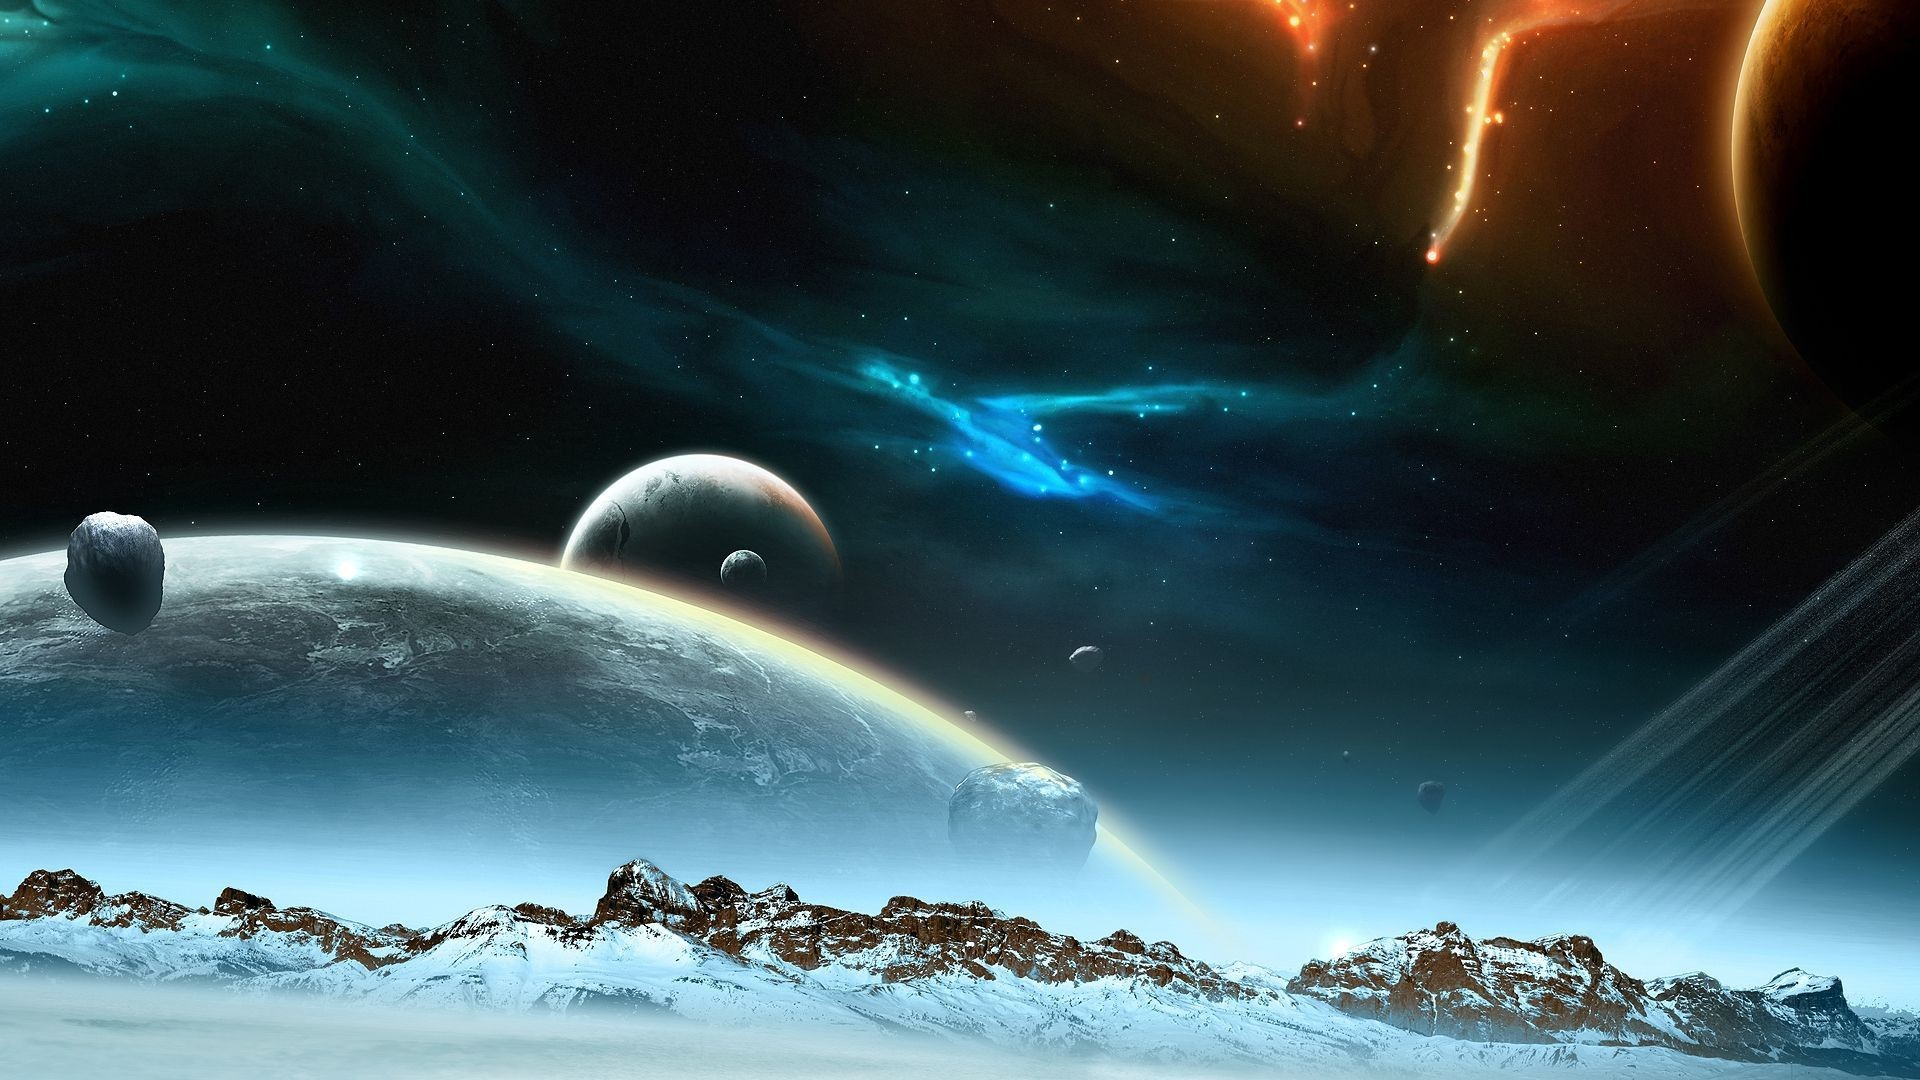 Res: 1920x1080, Outer-space-fantasy-hd-wallpaper--7497.jpg